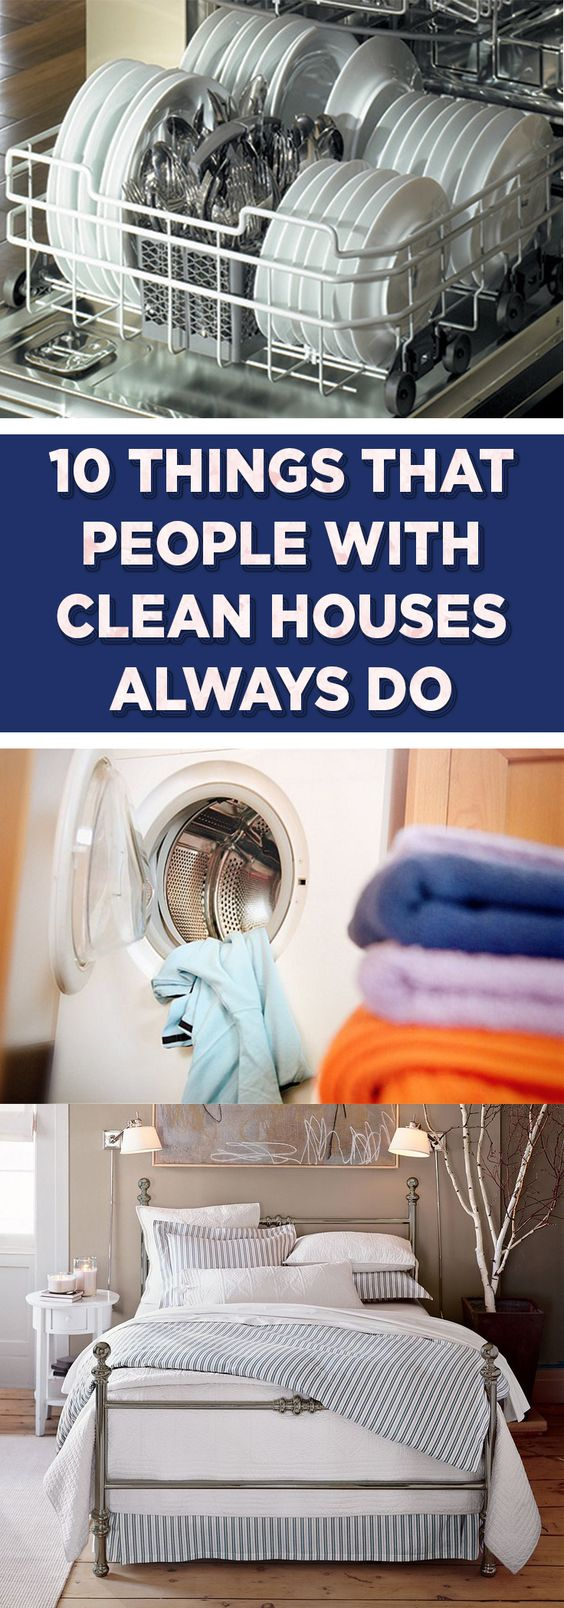 10 Things That People with Clean Houses Always Do - Page 3 of 11 ...